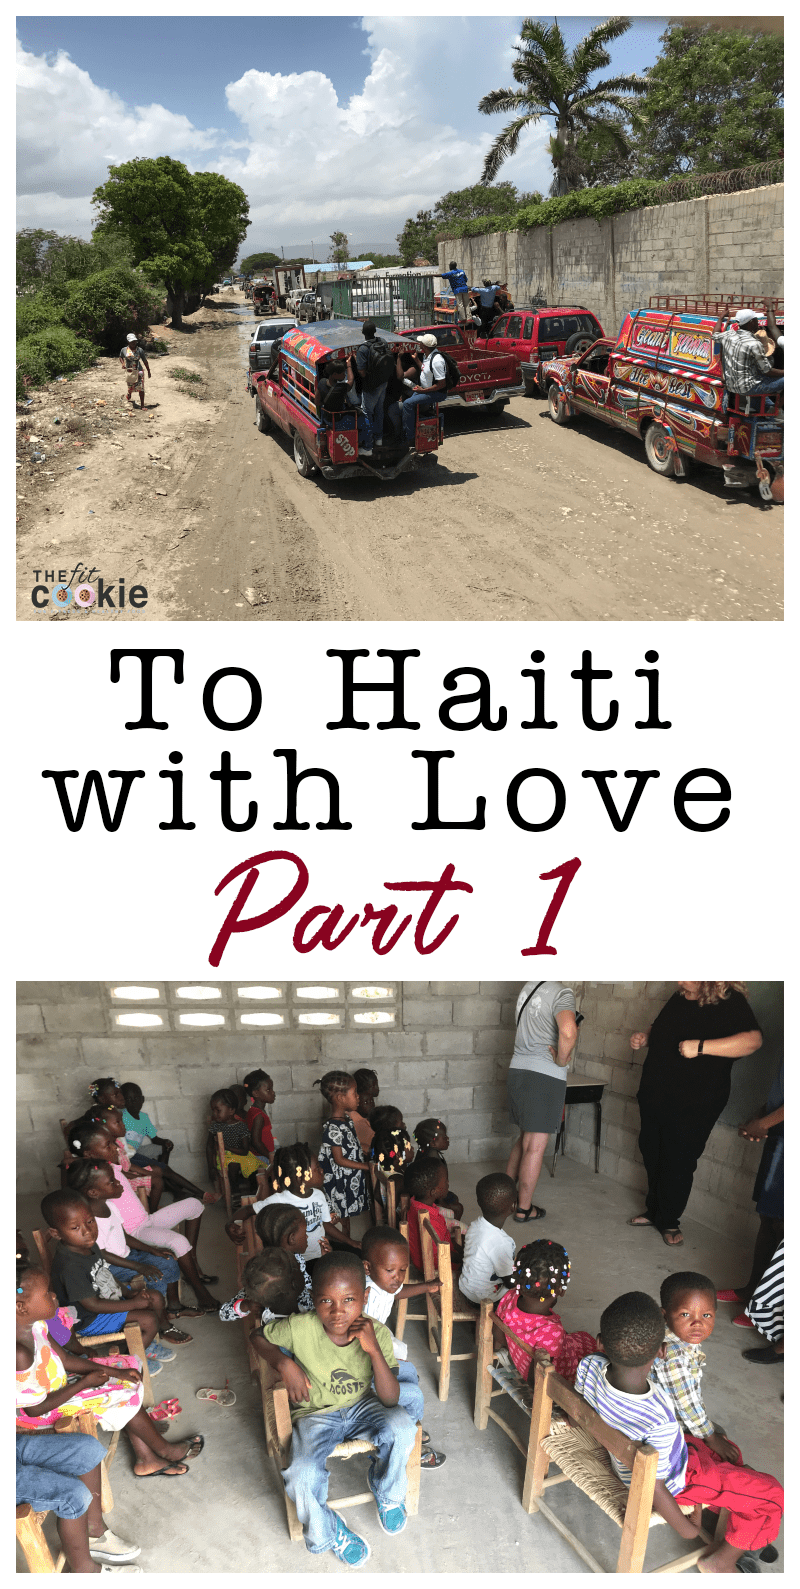 image collage of street scene in Haiti and Haitian children in kindergarten class